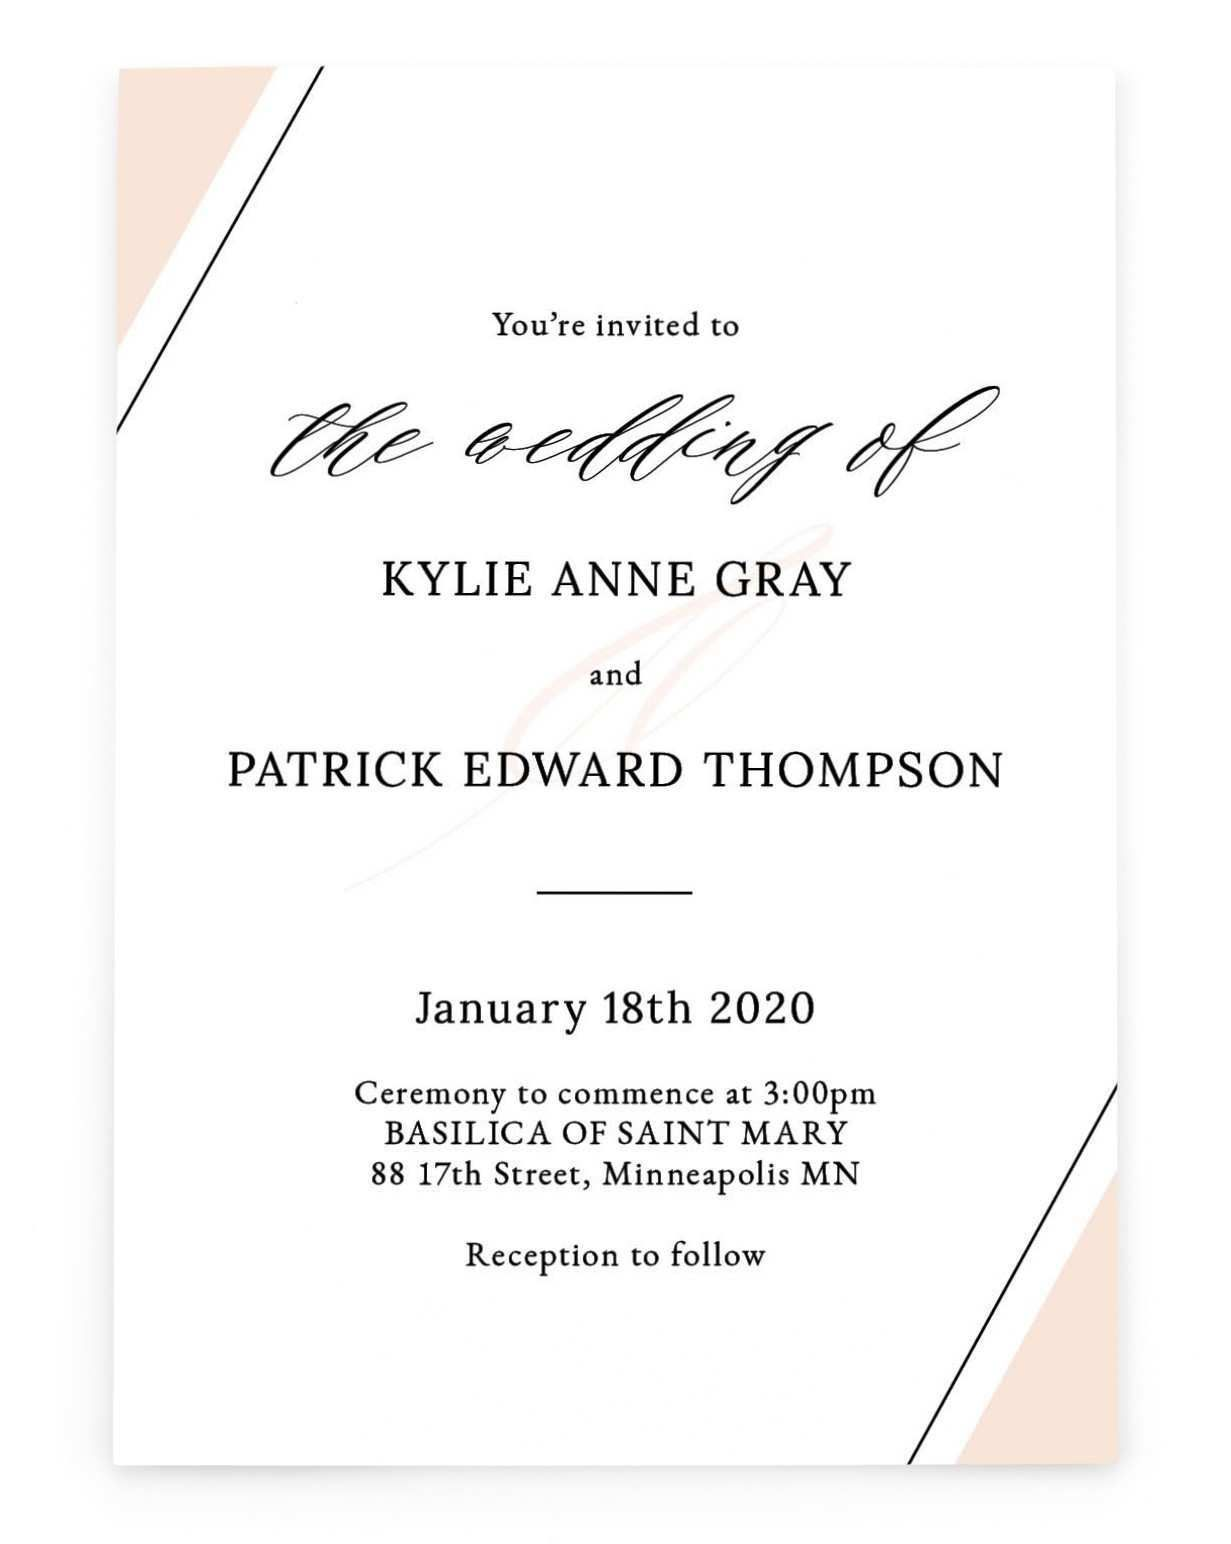 8 Top Image Card Format For Wedding Marriage Invitation Card Sample Wedding Invitation Wording Invitation Card Format